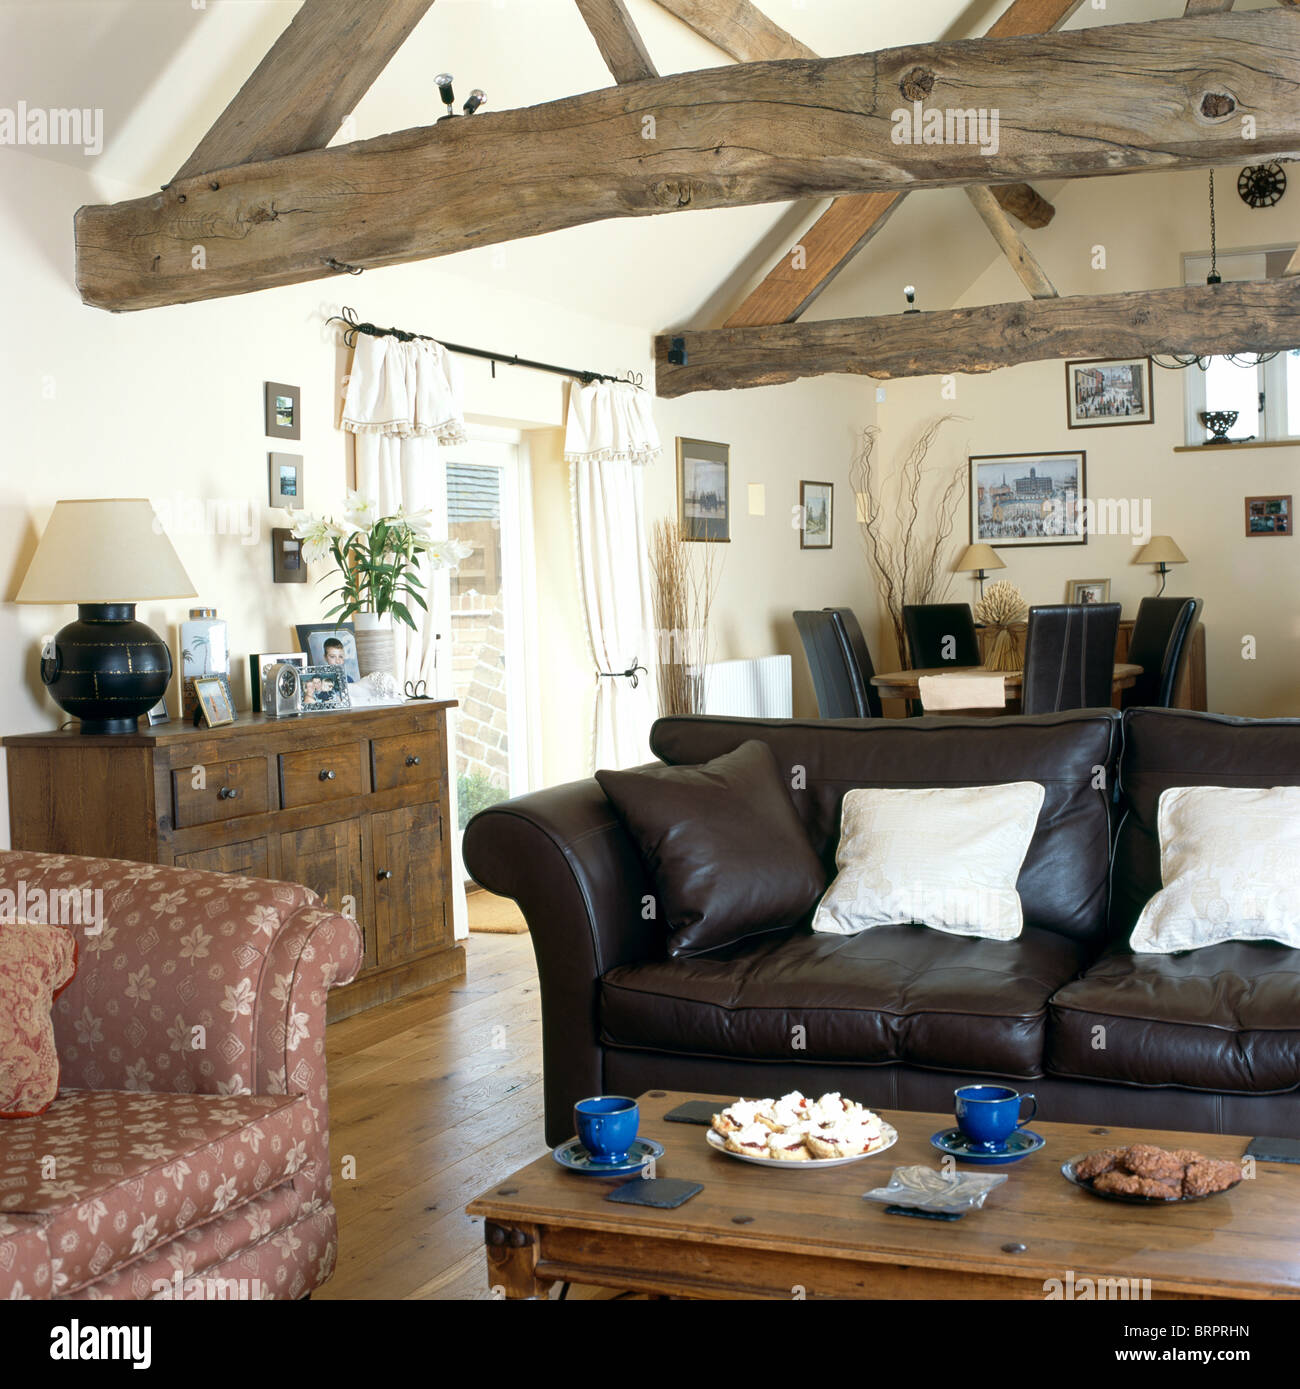 Country Leather Sofa: Black Leather Sofa And Old Wooden Chest In Country Living